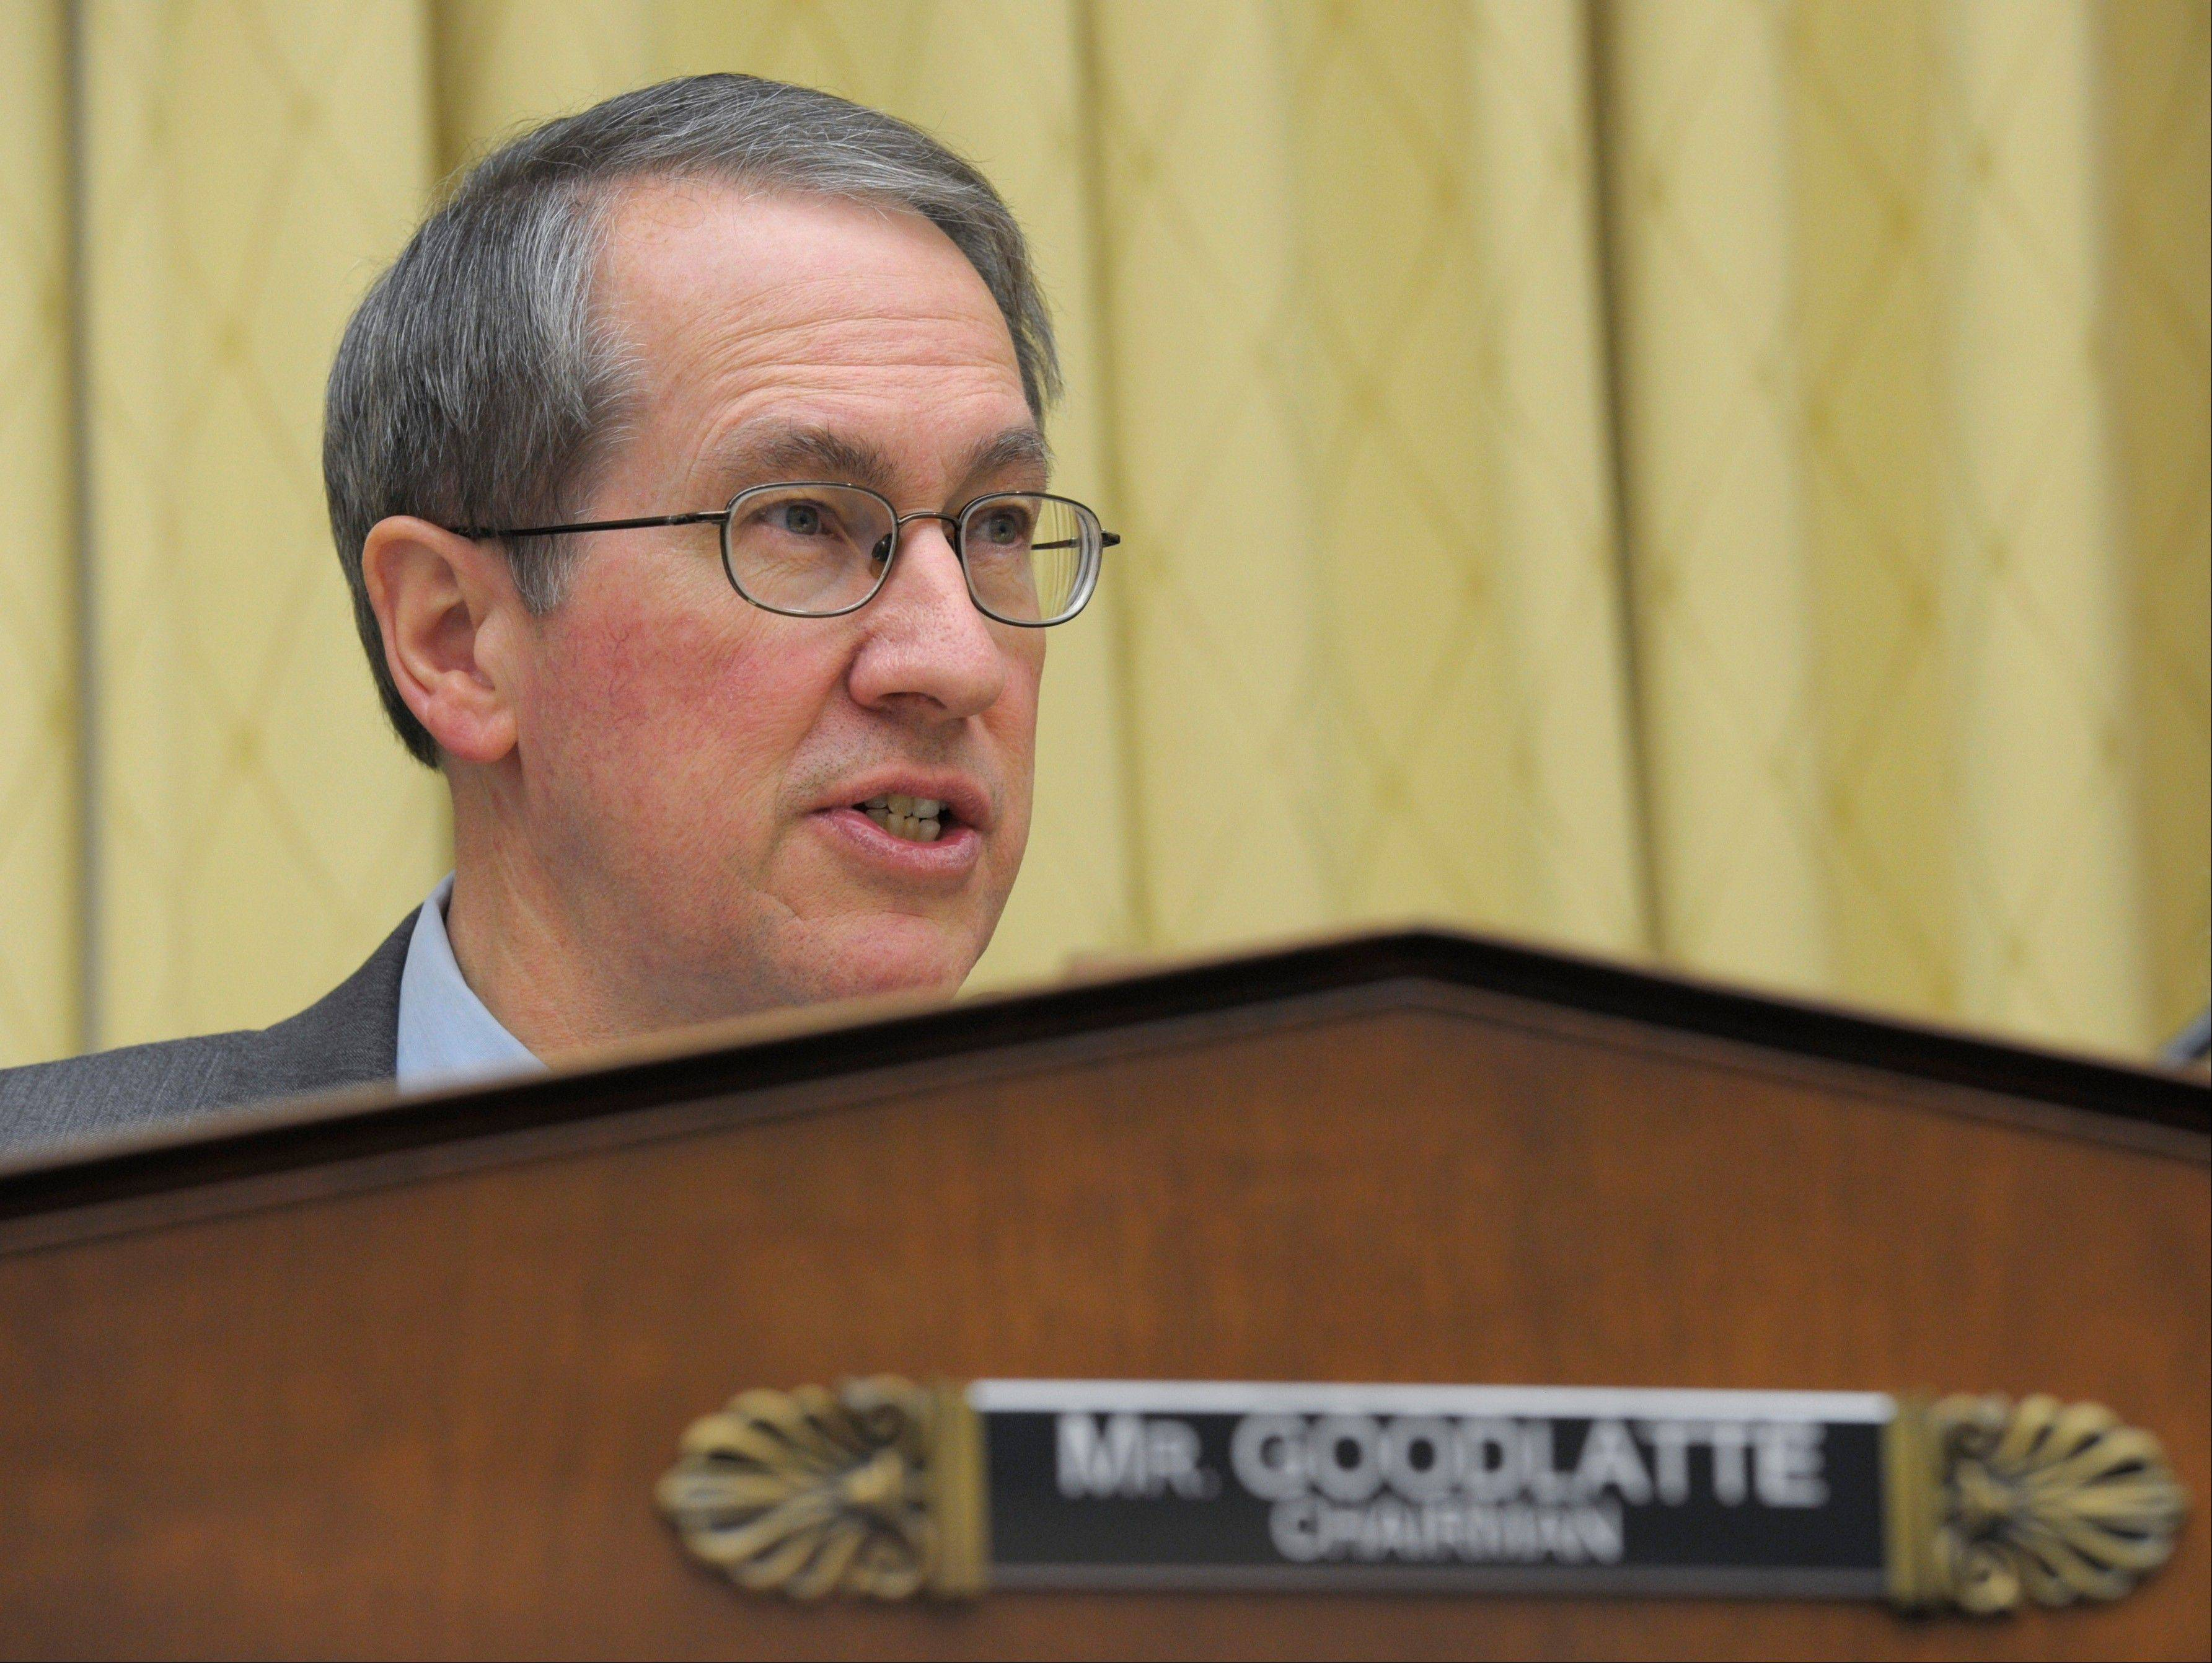 House Judiciary Committee Chairman Rep. Bob Goodlatte, a Virginia Republican, gives his opening remarks on Capitol Hill in Washington Tuesday, prior to the committee's hearing on immigration.